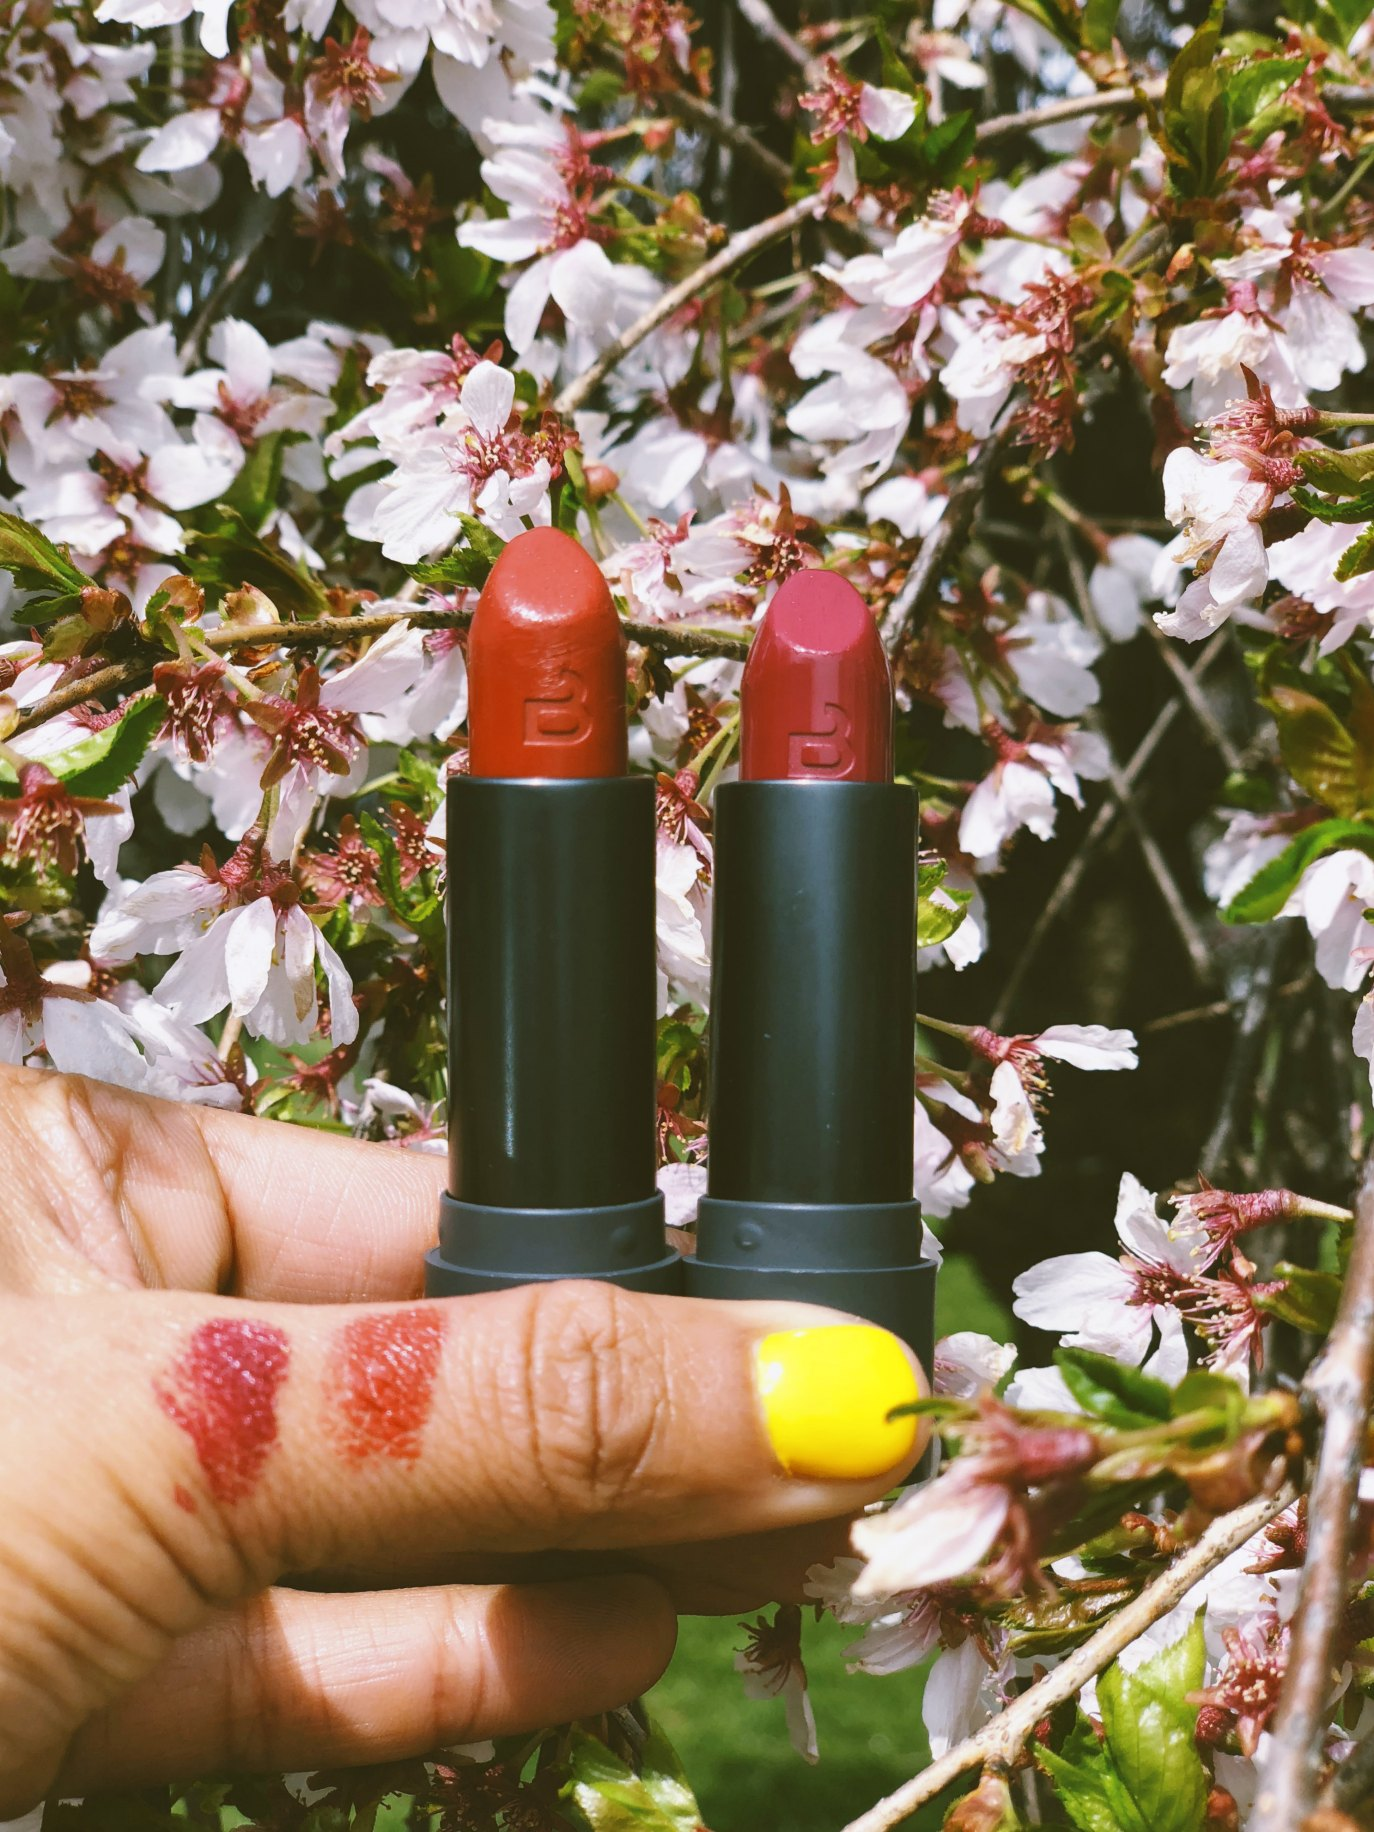 Lifestyle blog dreaming loud sharing Sephora Natural Beauty favorites-BITE BEAUTY Amuse Bouche Lipstick in beetroot and maple - Cruelty Free Beauty Products From Sephora featured by natural beauty blogger, Dreaming Loud